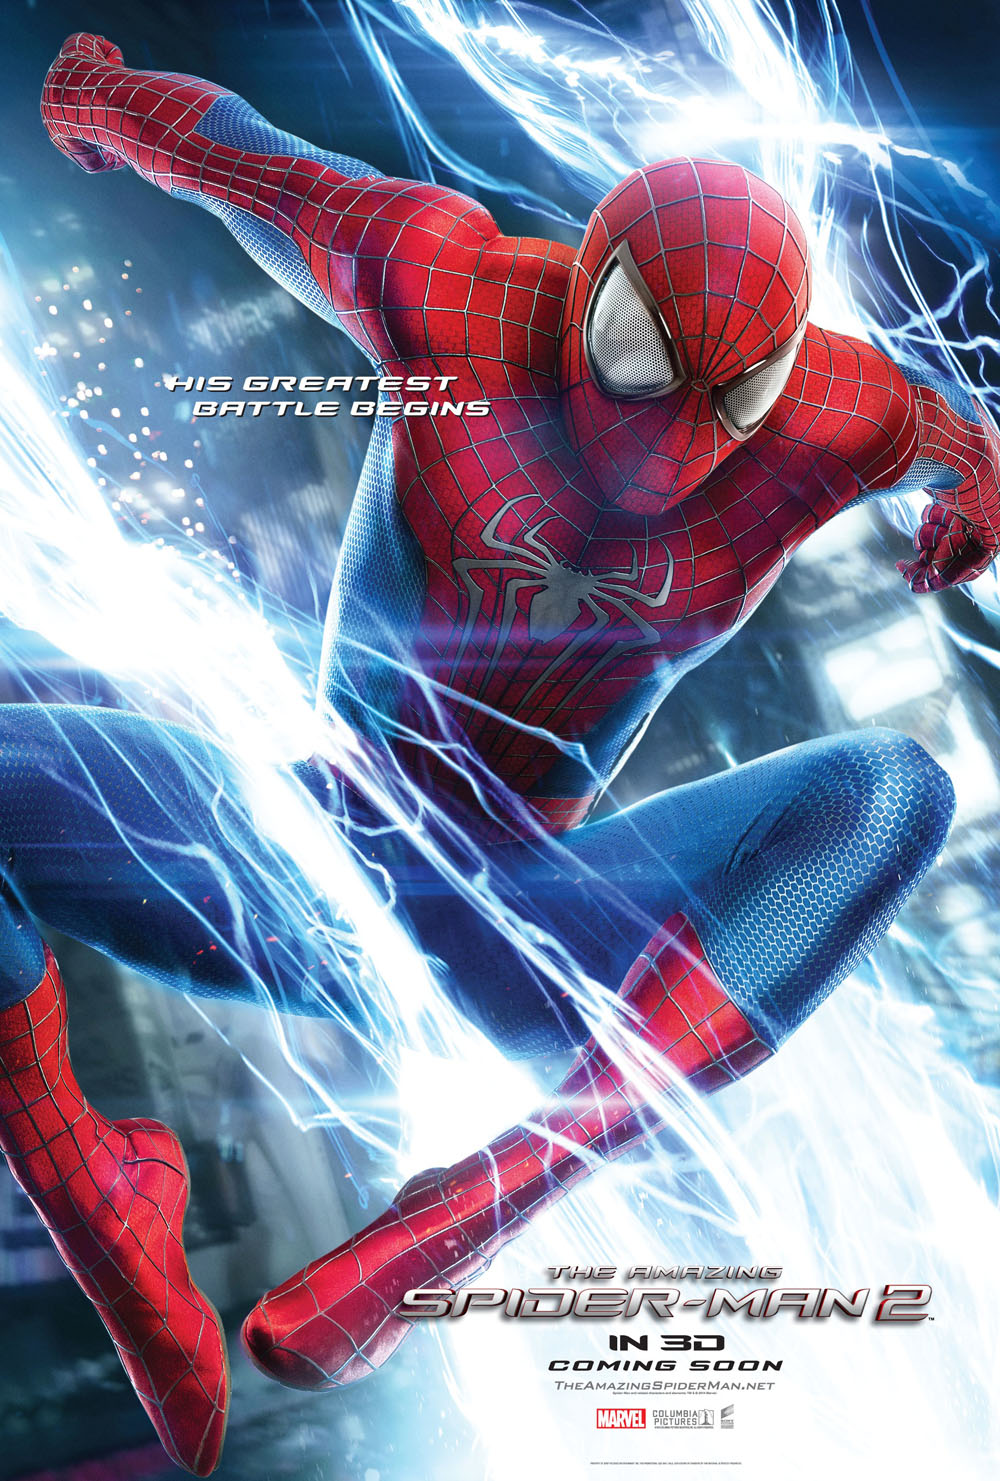 spiderman-versus-rhino-movie-poster